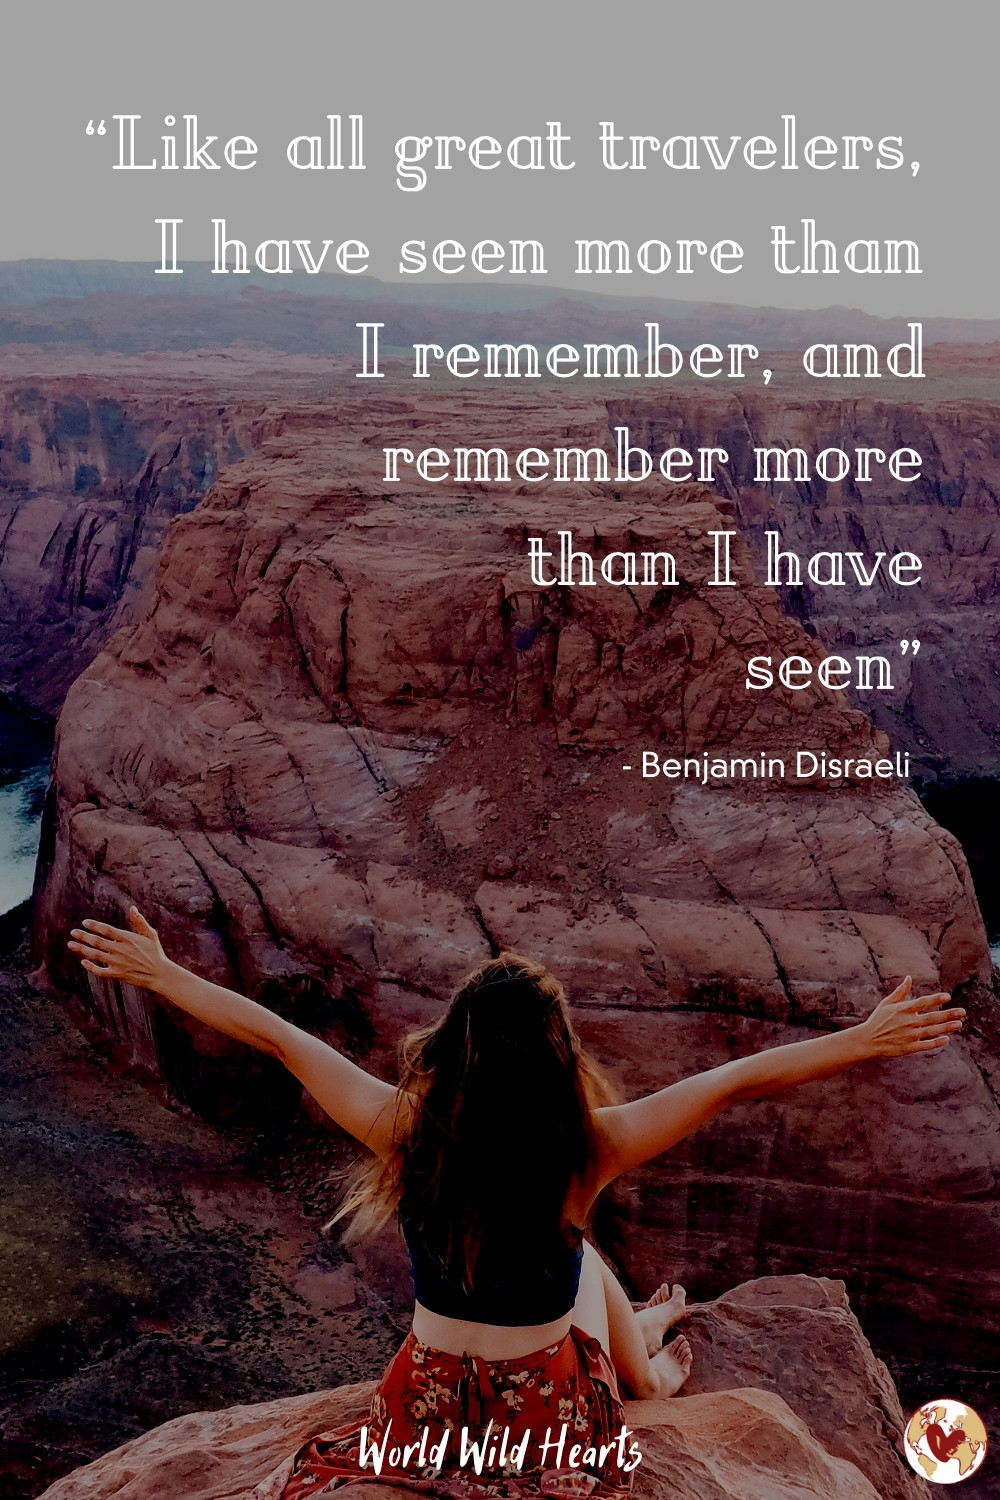 Famous quote on travel for your wanderlust